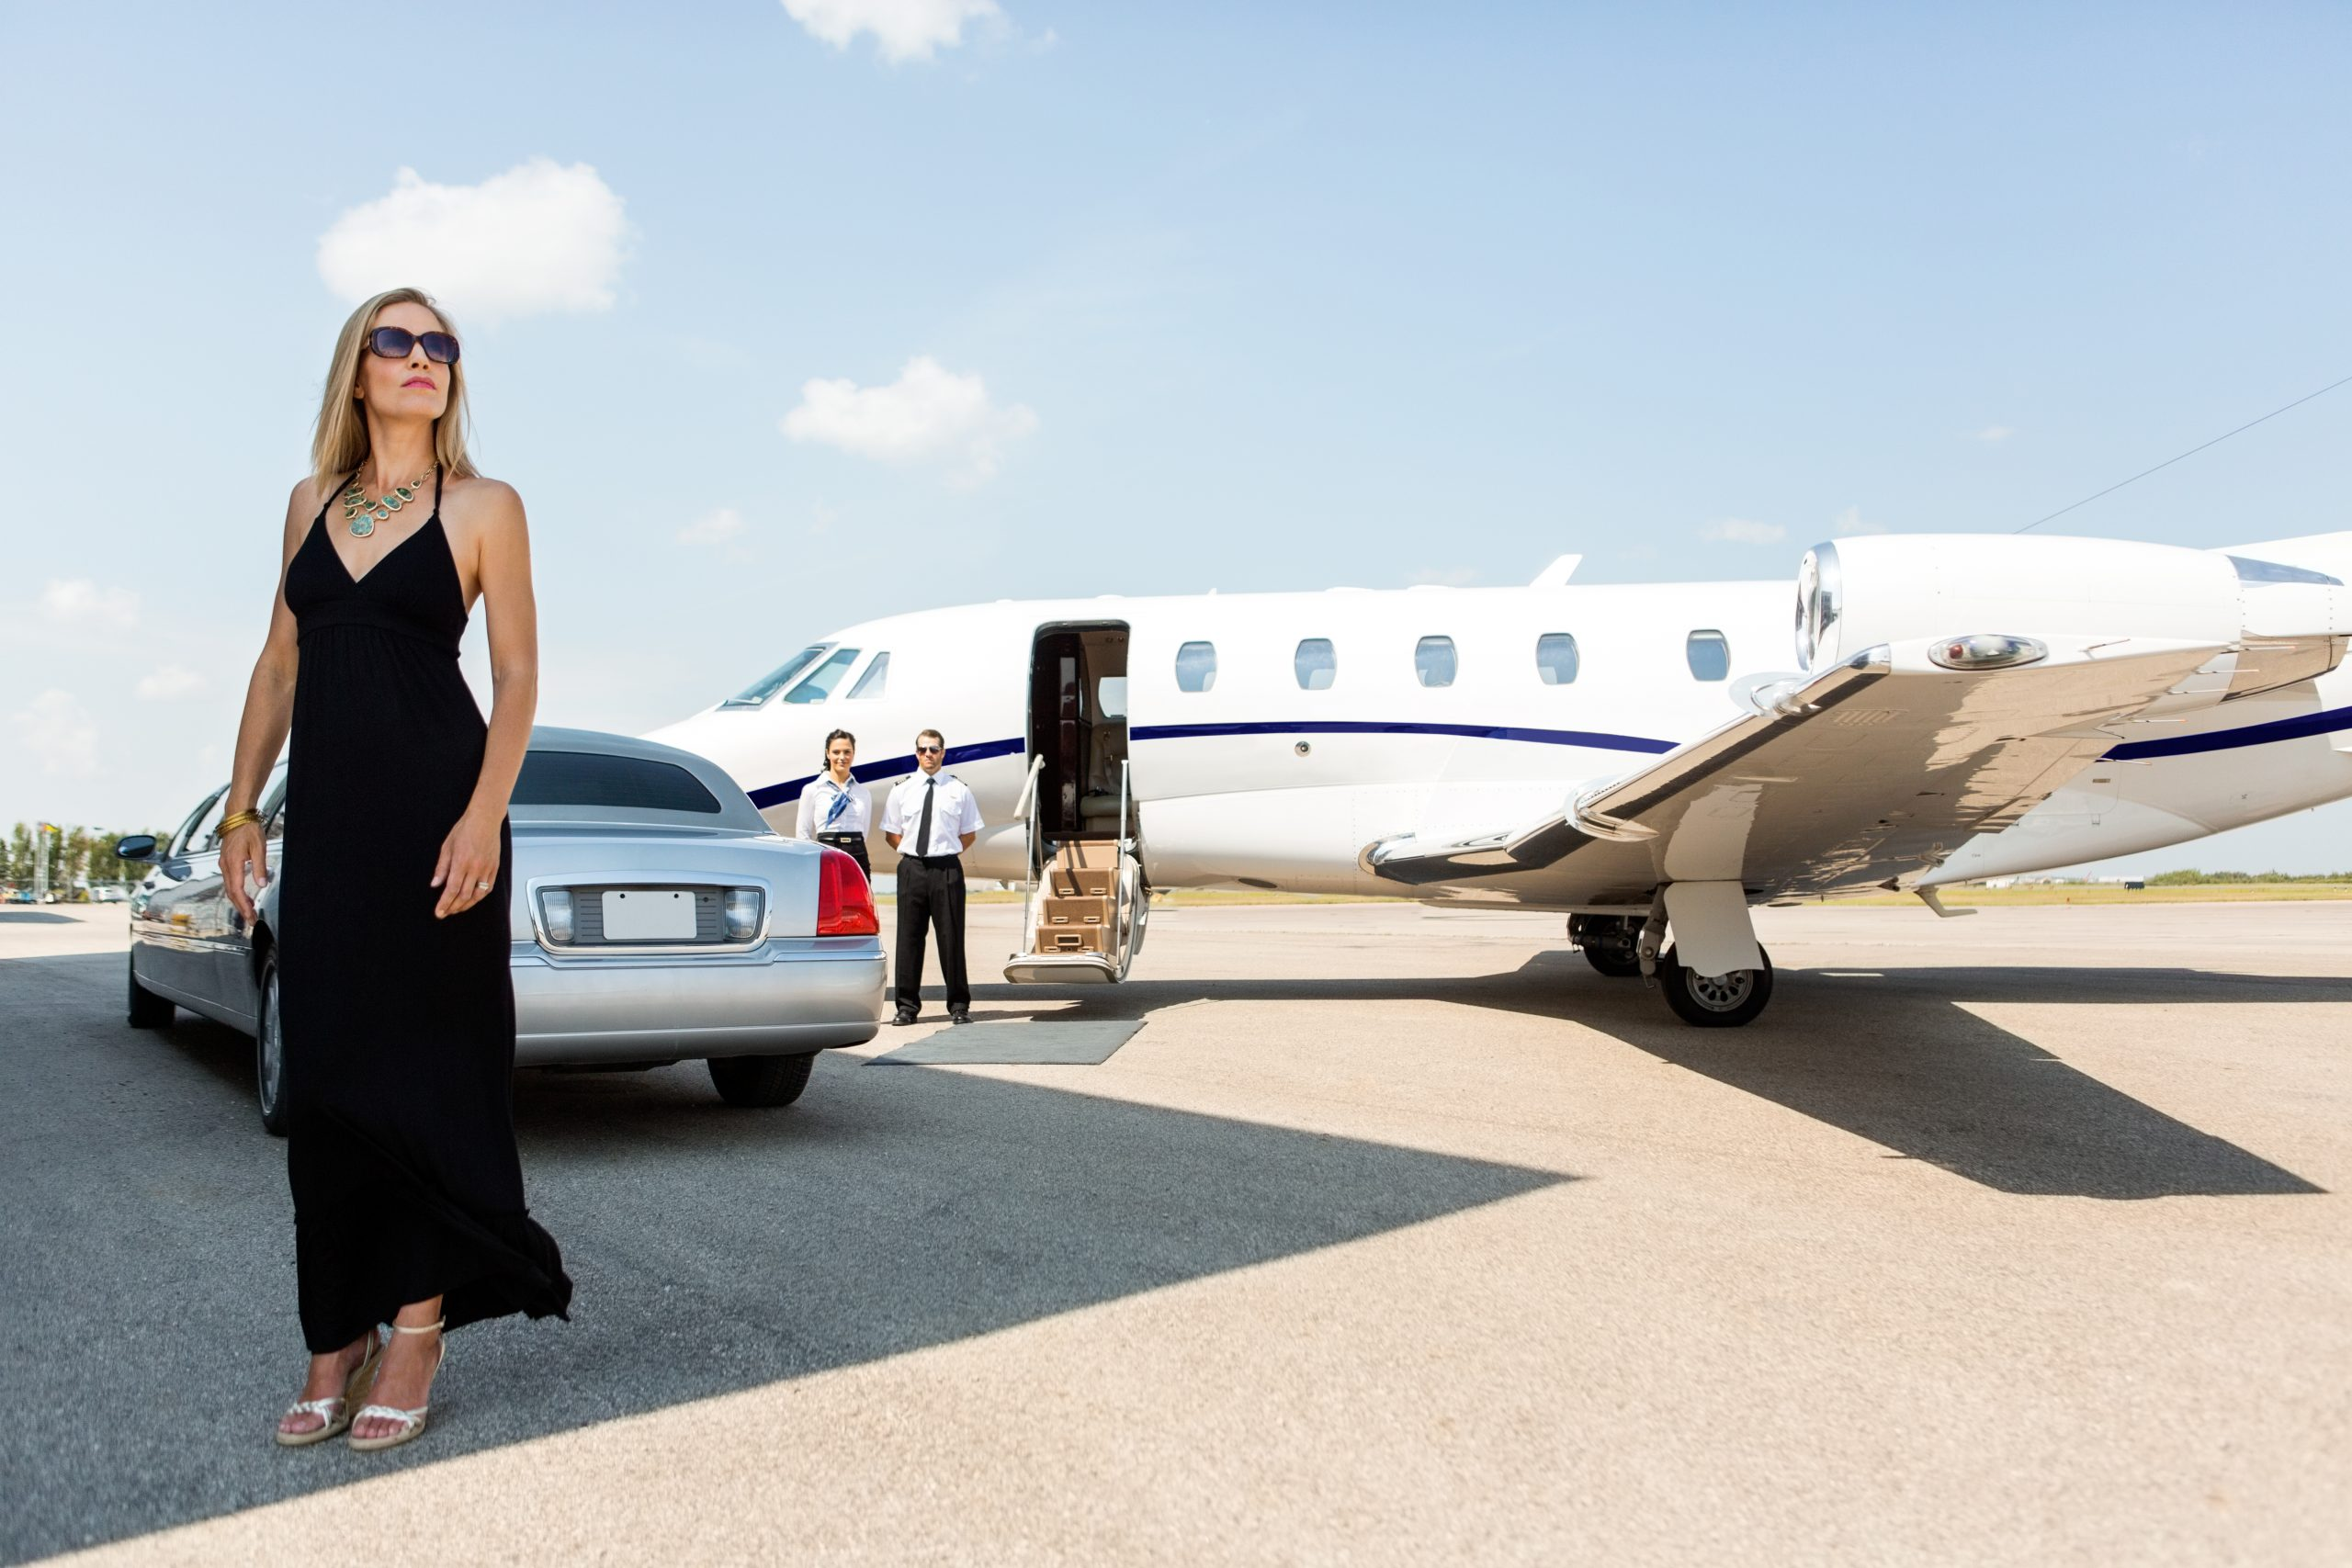 Rich Lady at Airport by 7 StarLimo